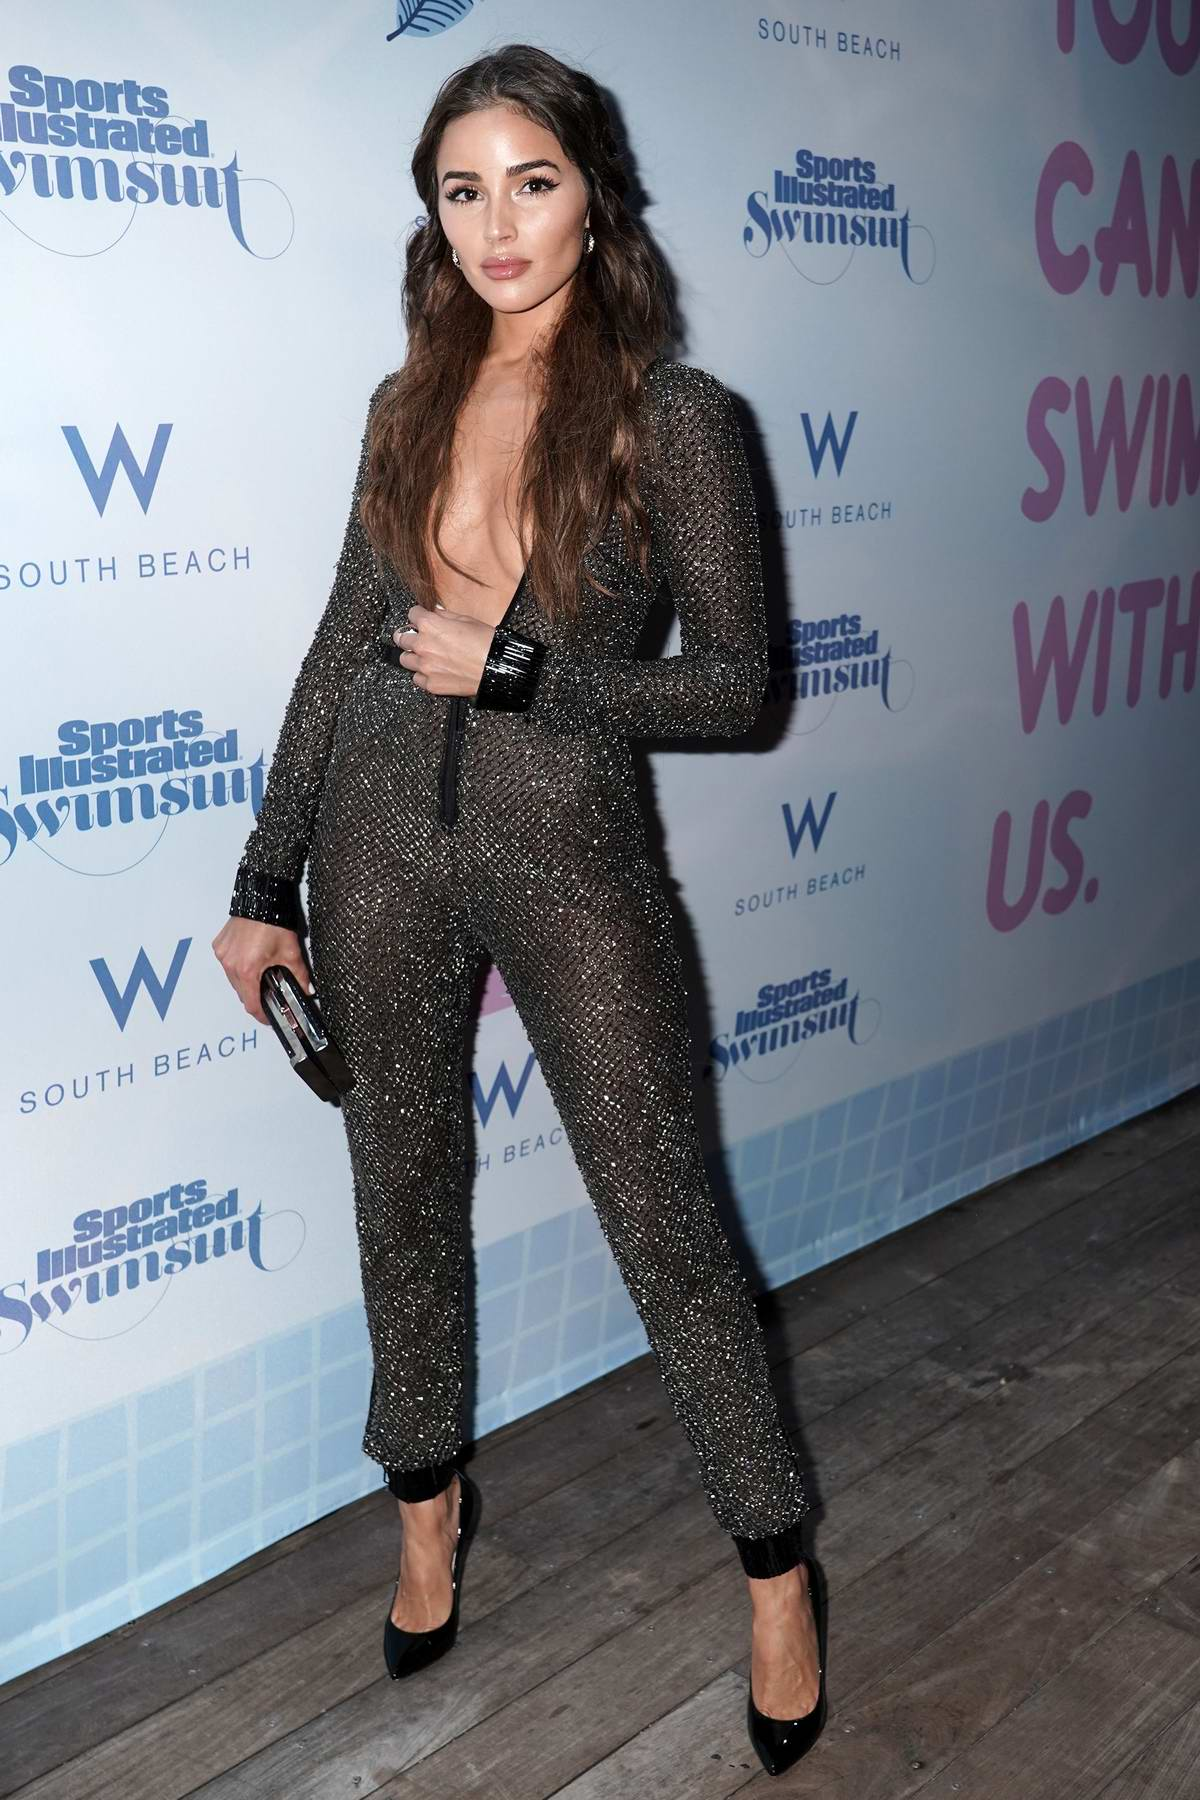 Olivia Culpo attends the 2019 Sports Illustrated Swimsuit Runway Show during Miami Swim Week in Miami, Florida